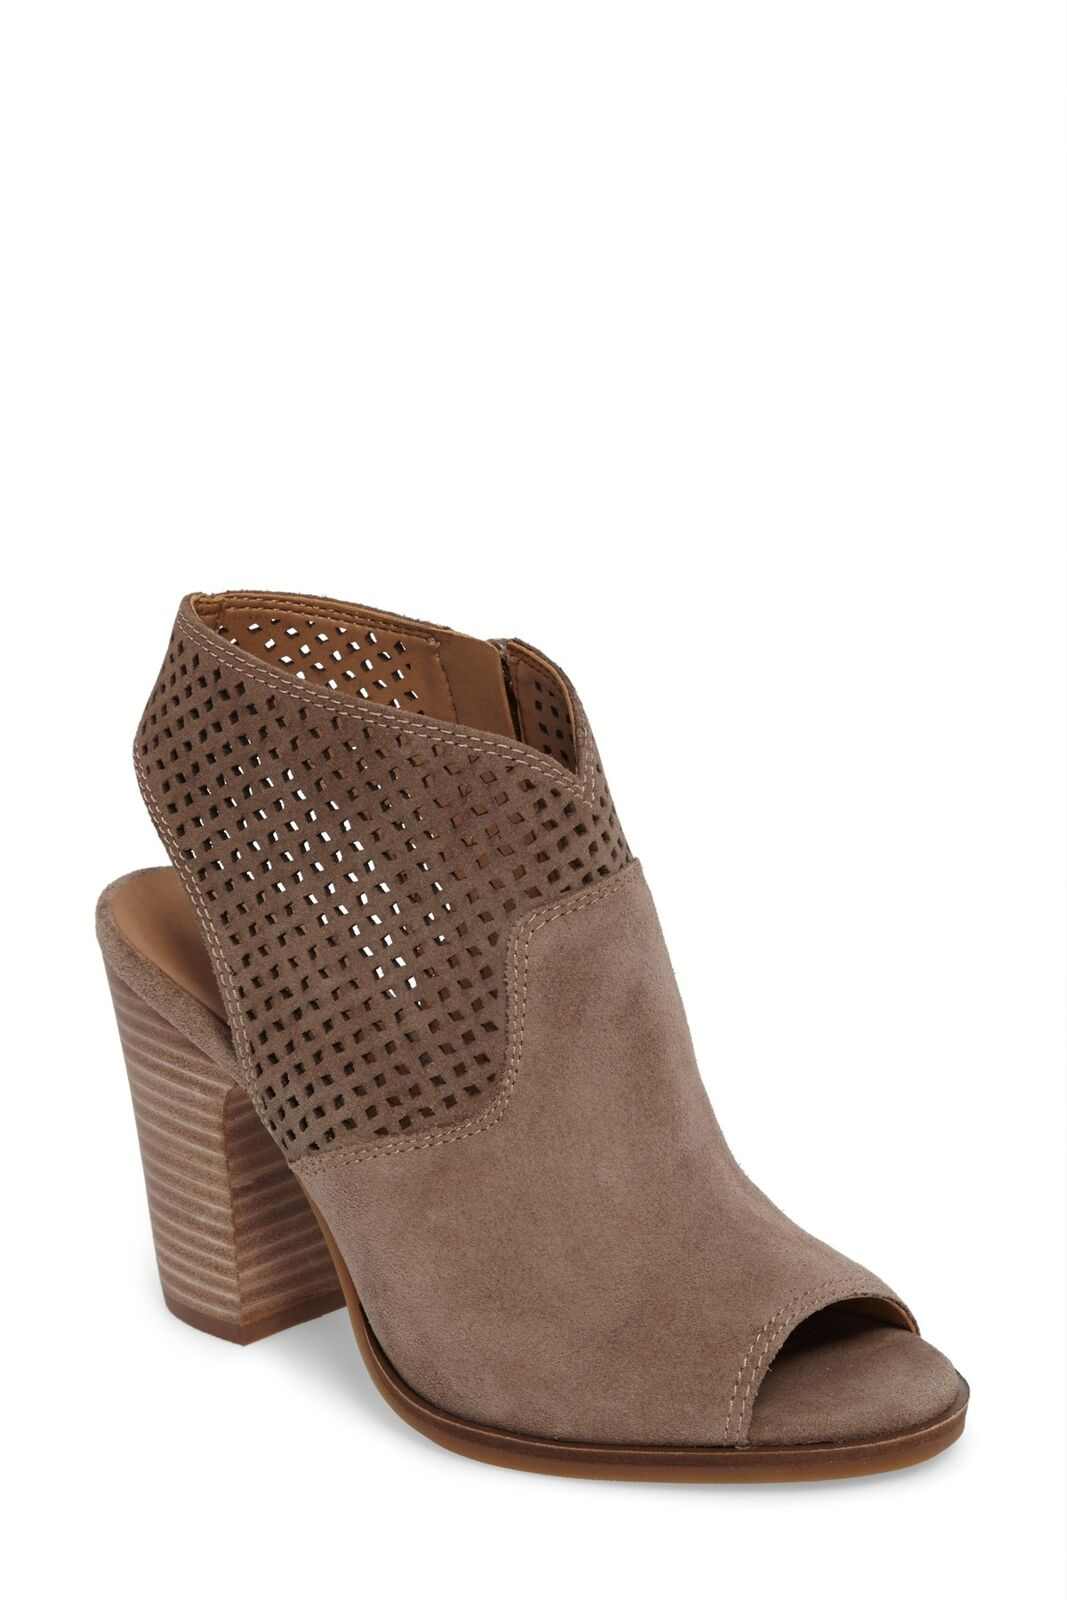 Lucky Brand LIZARA Perforated Block Heel Sandal BRINDLE SUEDE